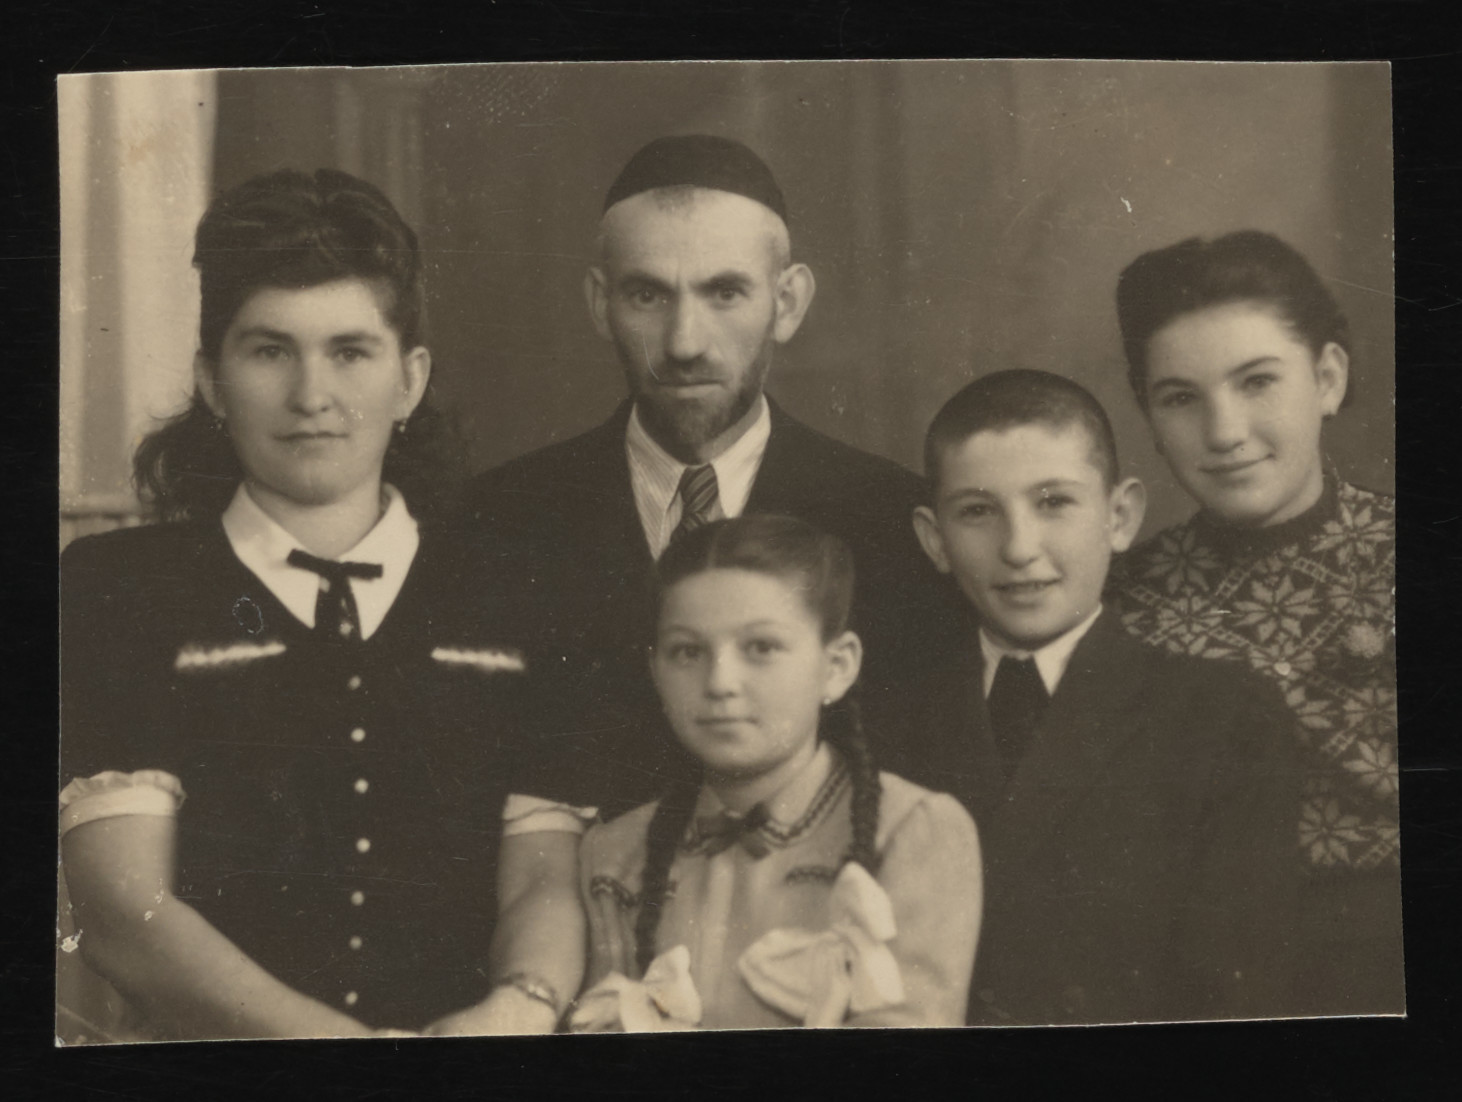 Postwar photograph of the Spitzer family.  Pictured from left to right are Fany, Anton, Lily, Nathan and Sara.